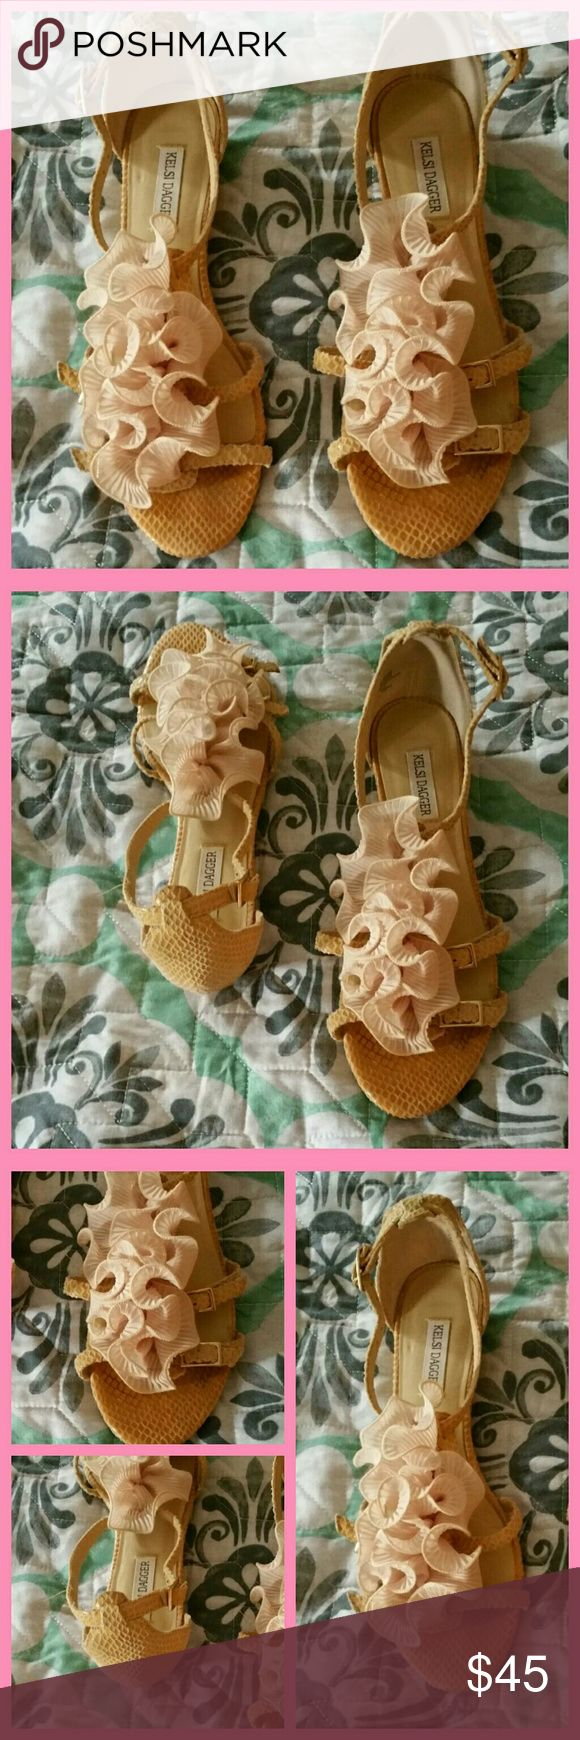 💕 Kelsi Dagger Monroe Sandles Beautiful sandals! They deserve to be worn in style. Don't miss out! Only worn once. Kelsi Dagger Shoes Sandals